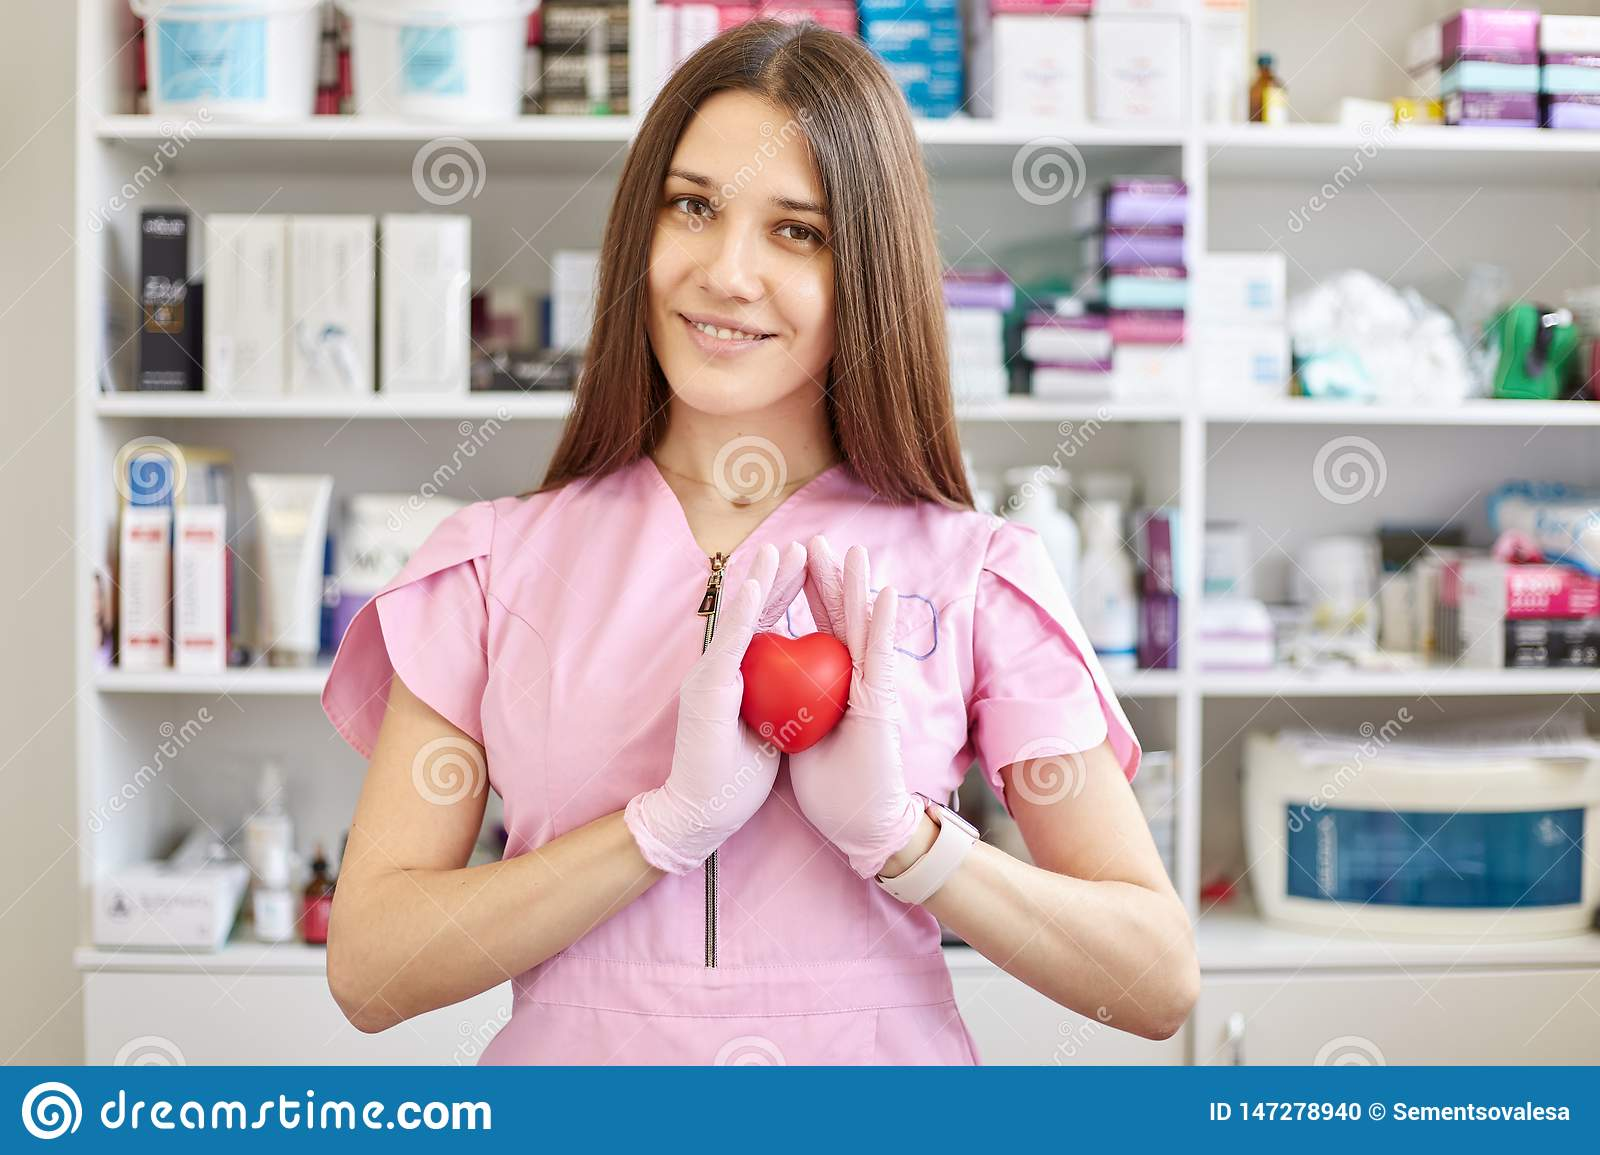 Female doctor wearing pink gown and latex gloves, has long straight brown hair, holds red plastic heart, poses in pharmasy over